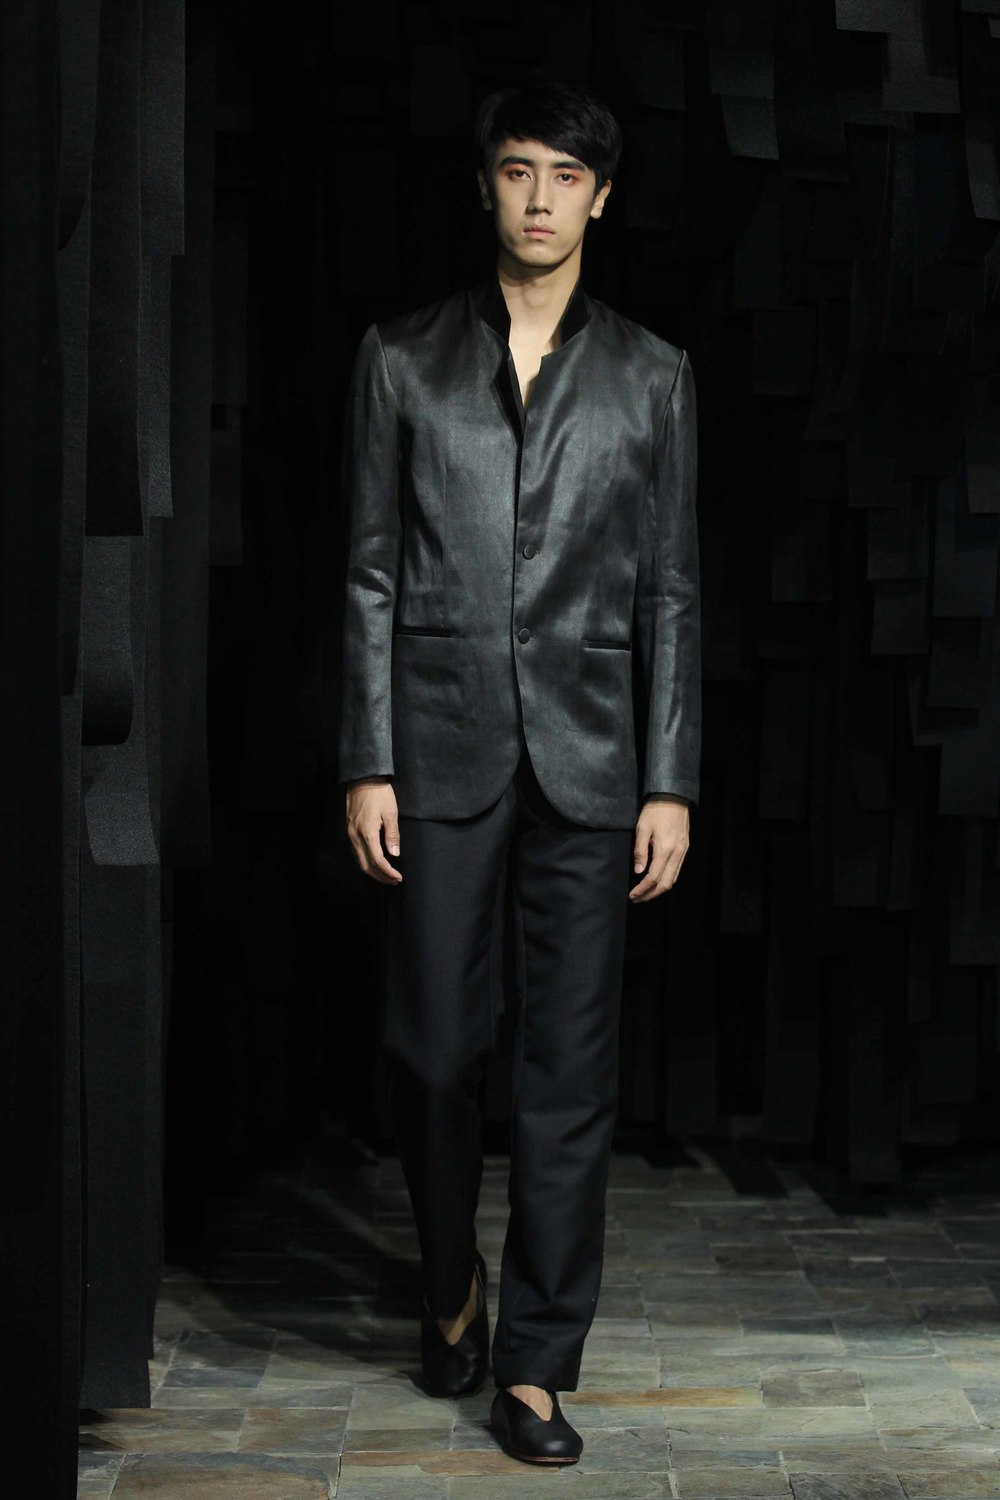 Tea-silk men's blazer with stand-up collar // woolen dress pants with tea-silk side-seam detailing